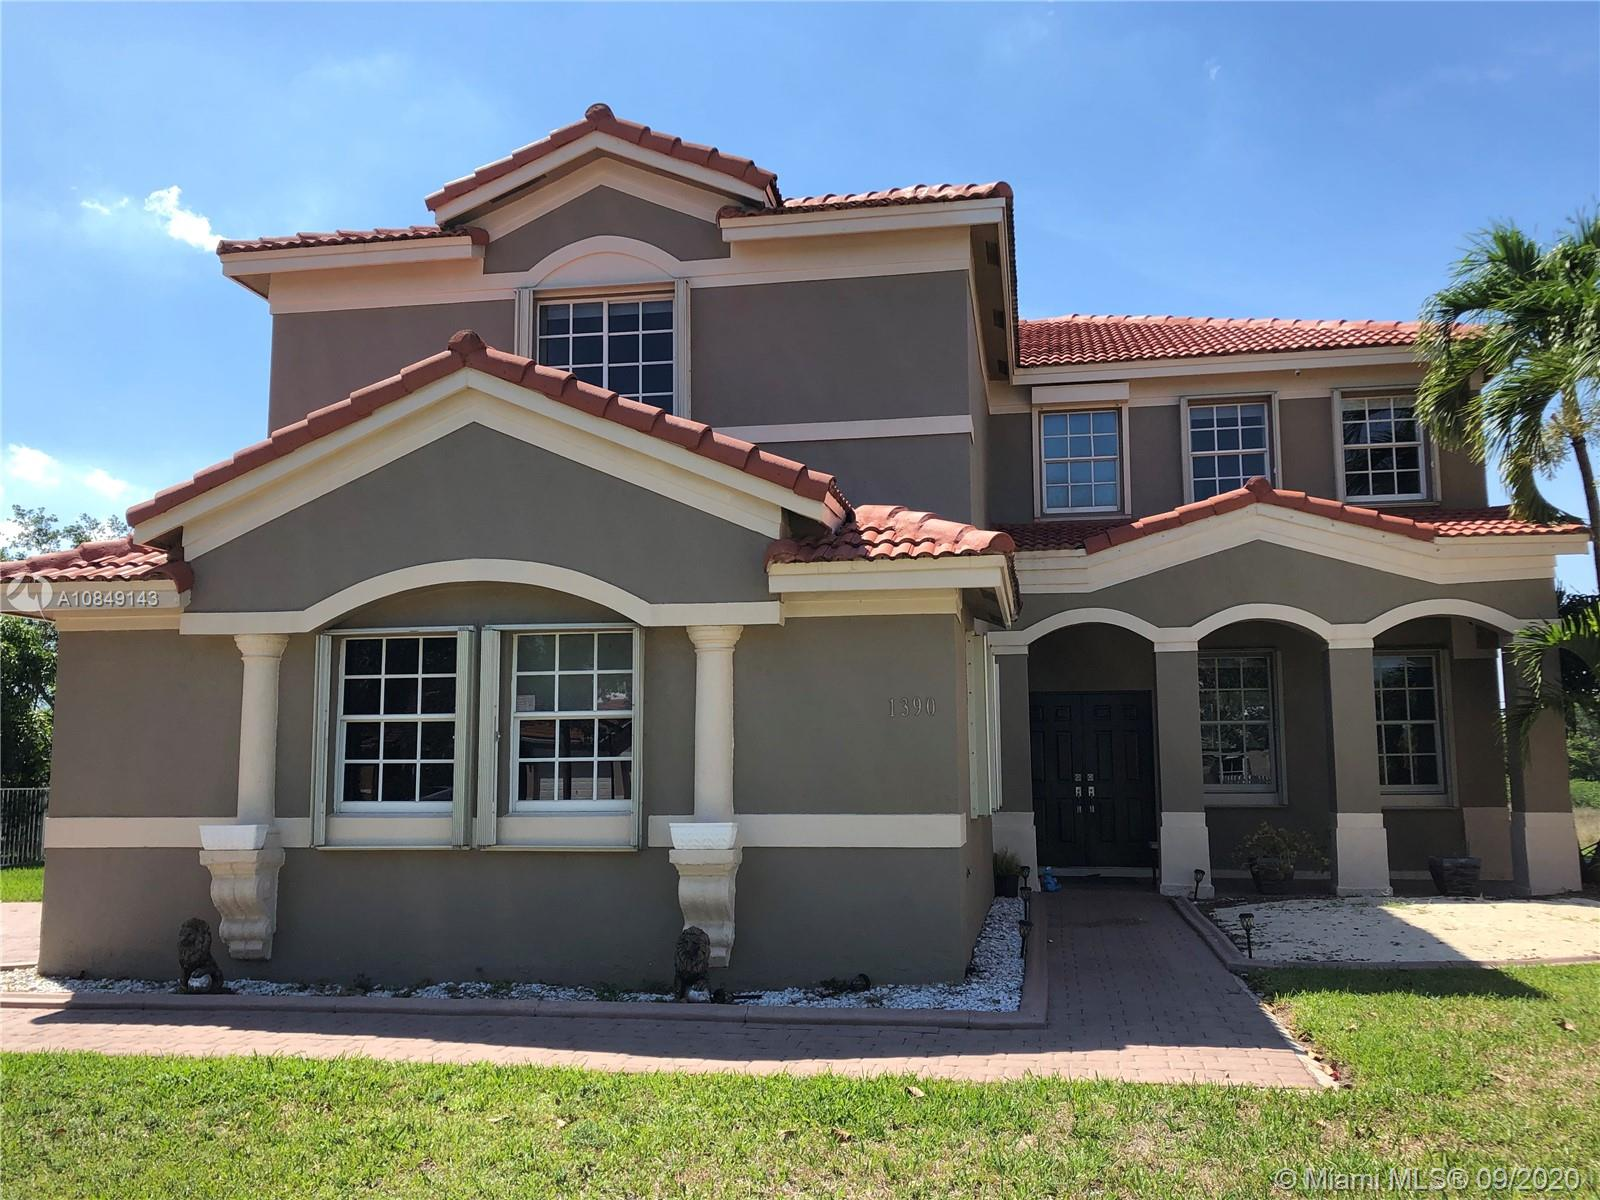 Gated community within Spring Valley Estates. Windows have a solar film for energy efficiency and a UV AC air purifier on both AC units. Community has two common areas, which includes a total of 8 tennis courts, covered Playground, community pool, basketball court.